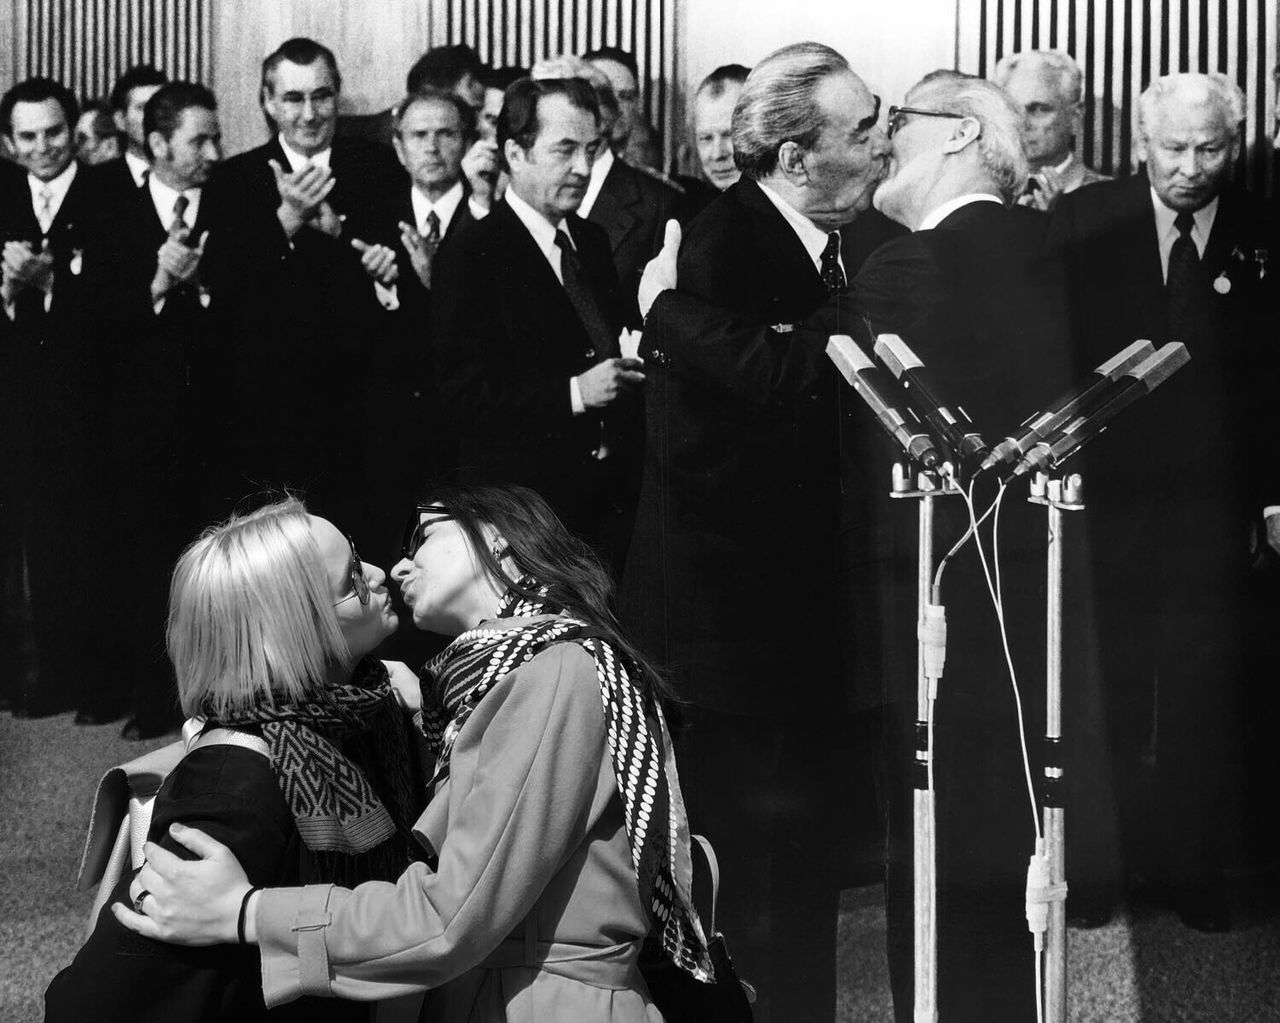 People_bw People Monochrome Bw Black & White Black And White Blackandwhite Streetphotography Streetphoto_bw Honecker Breschnew Kiss Girls DDR Udssr East Germany Soviet Sozialistischer Bruderkuss Bruderkuss Politics Political